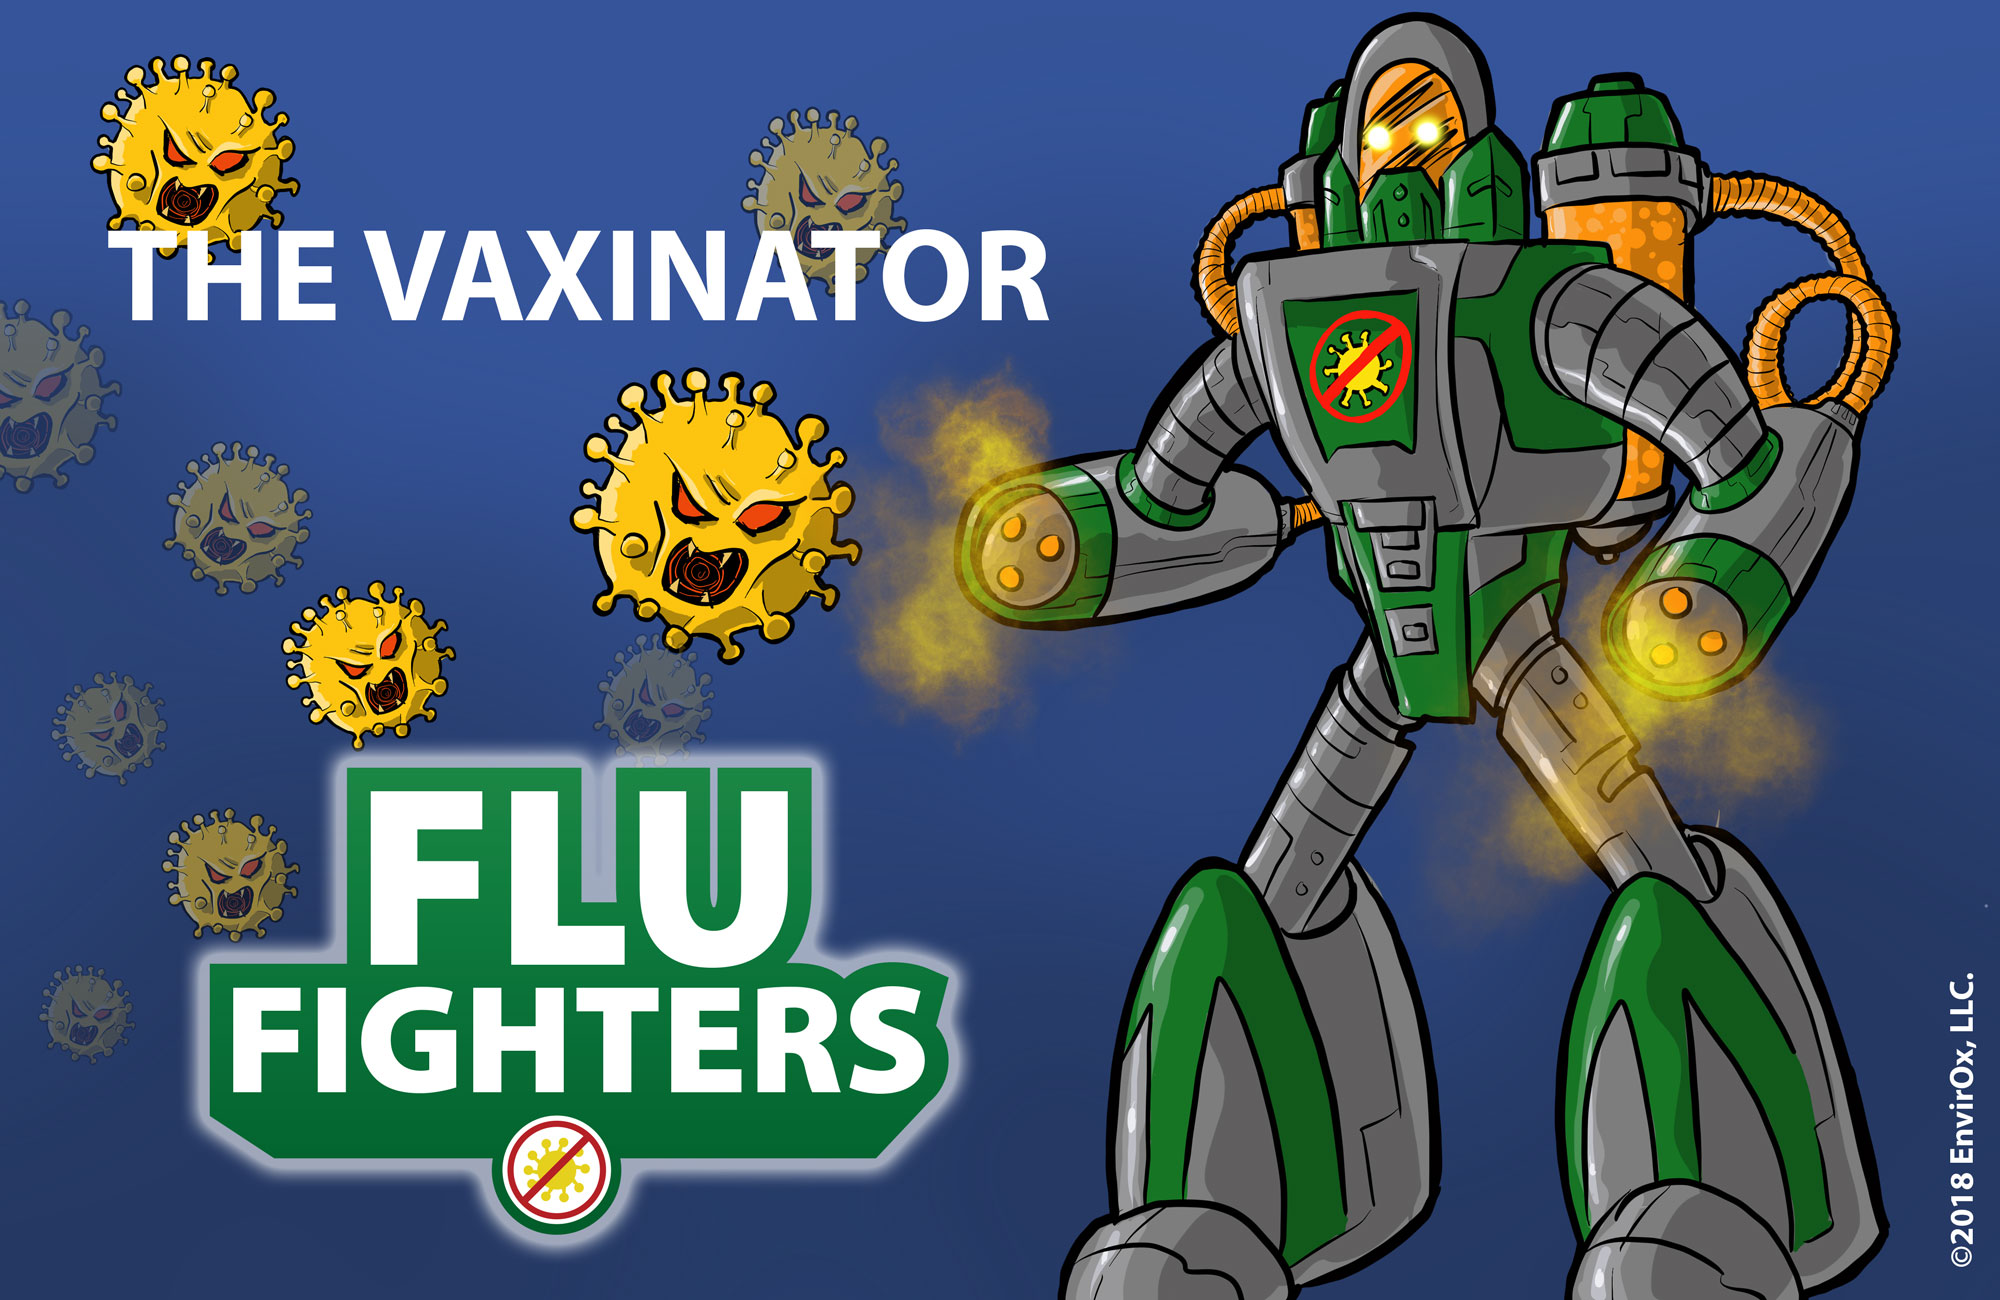 The Vaxinator